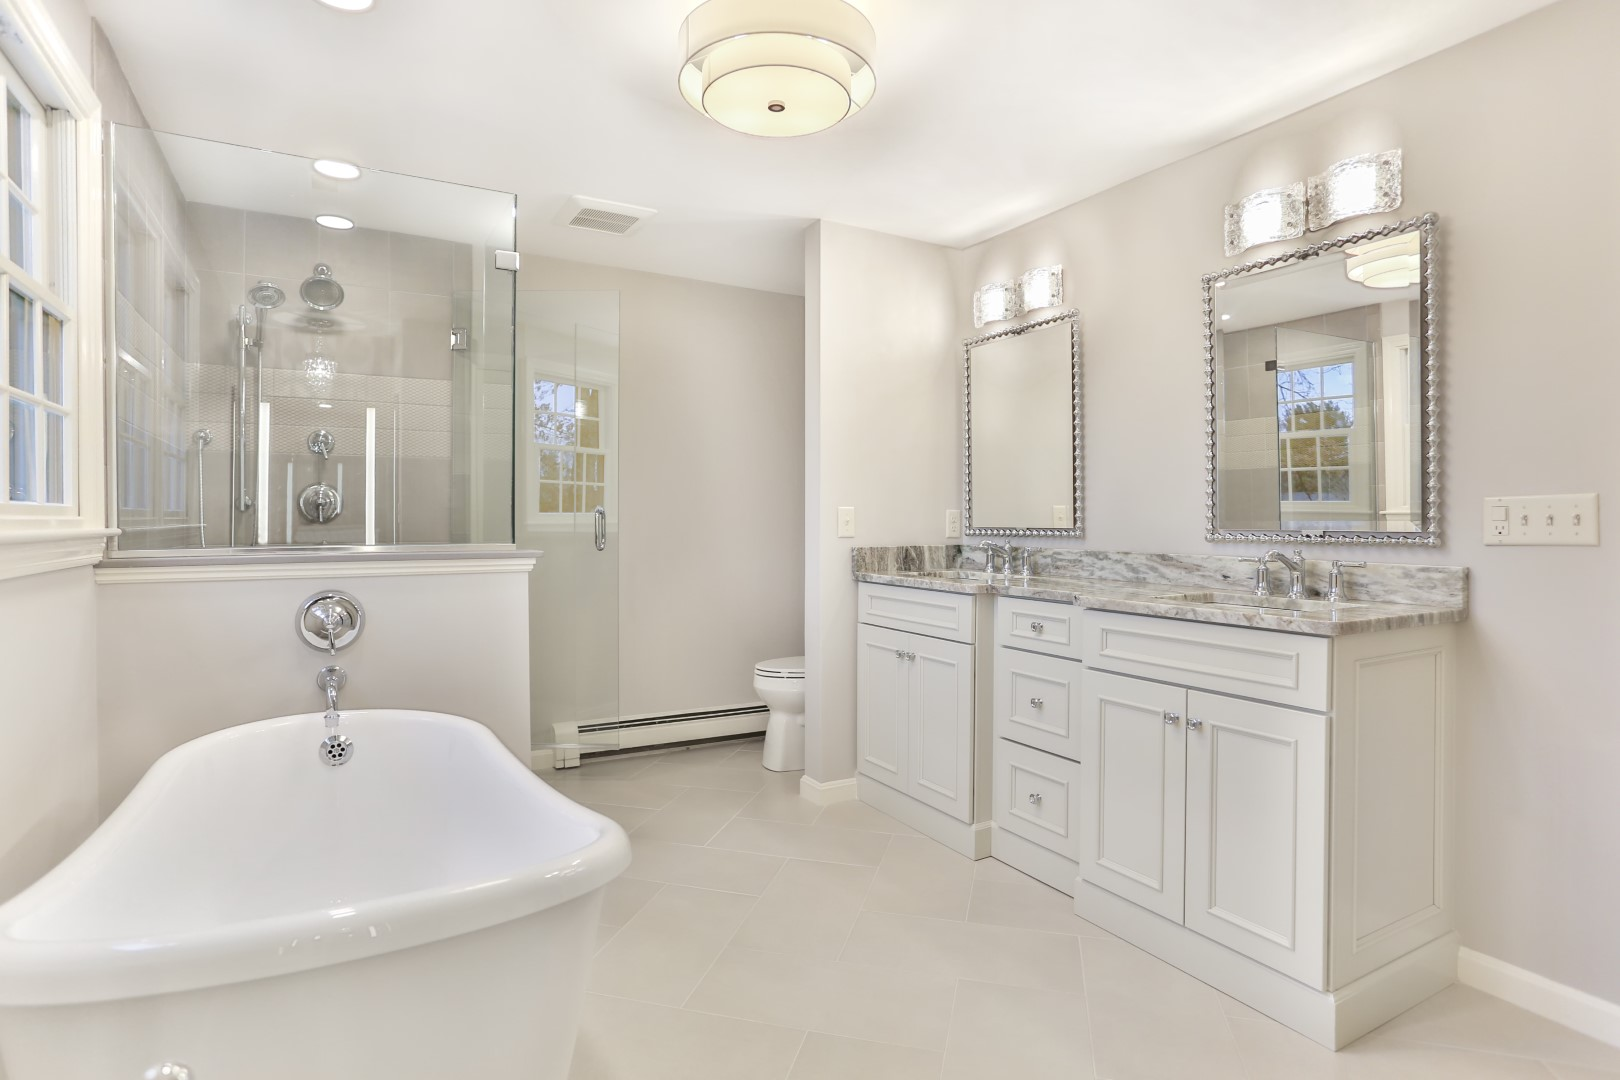 Residential - Master Bath Renovation 1.jpg